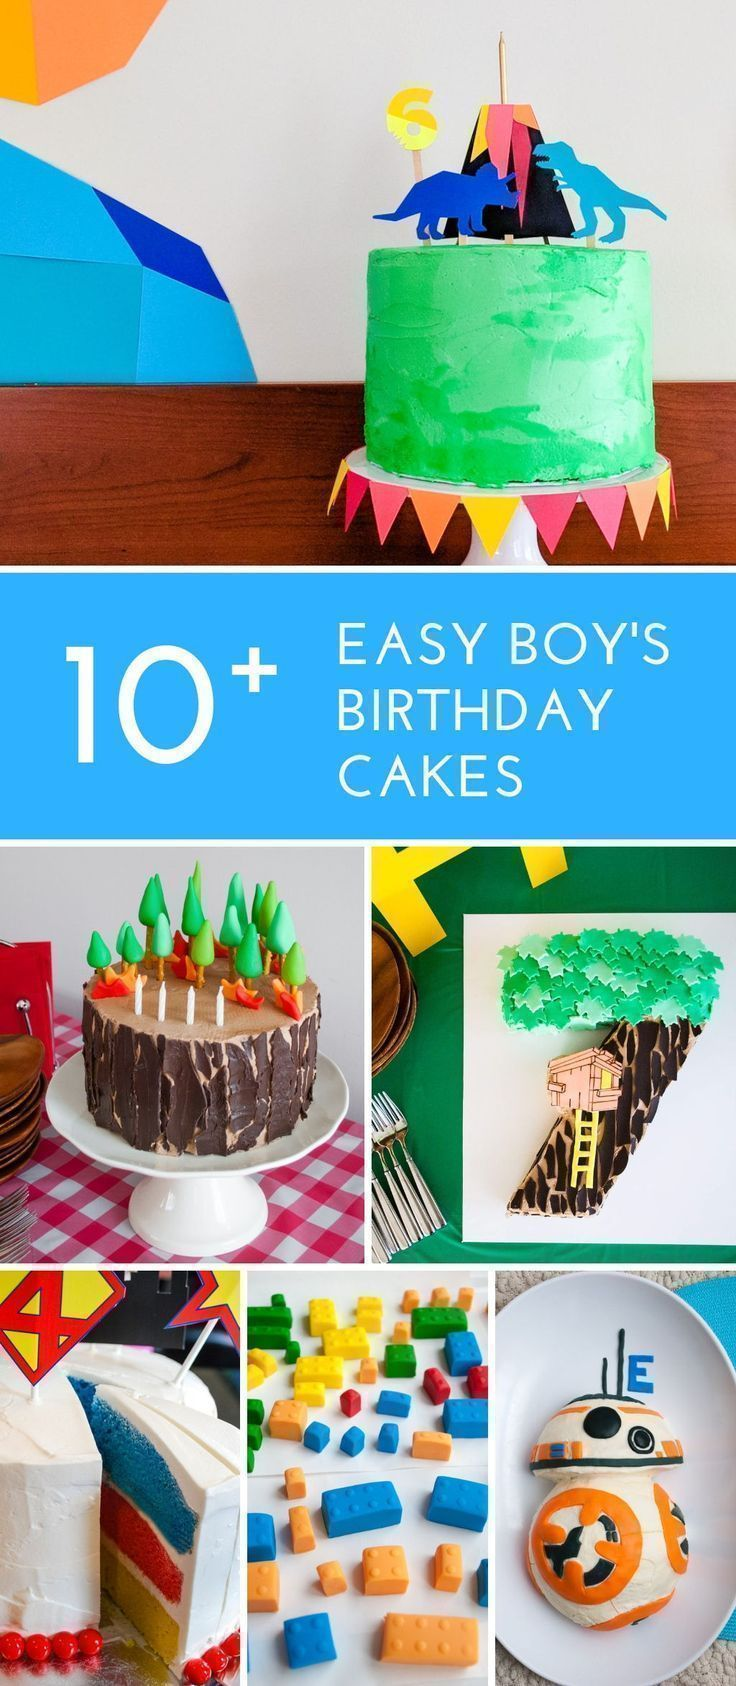 Easy Boys Birthday Cakes See These Simple Diy Boy Cake Ideas For